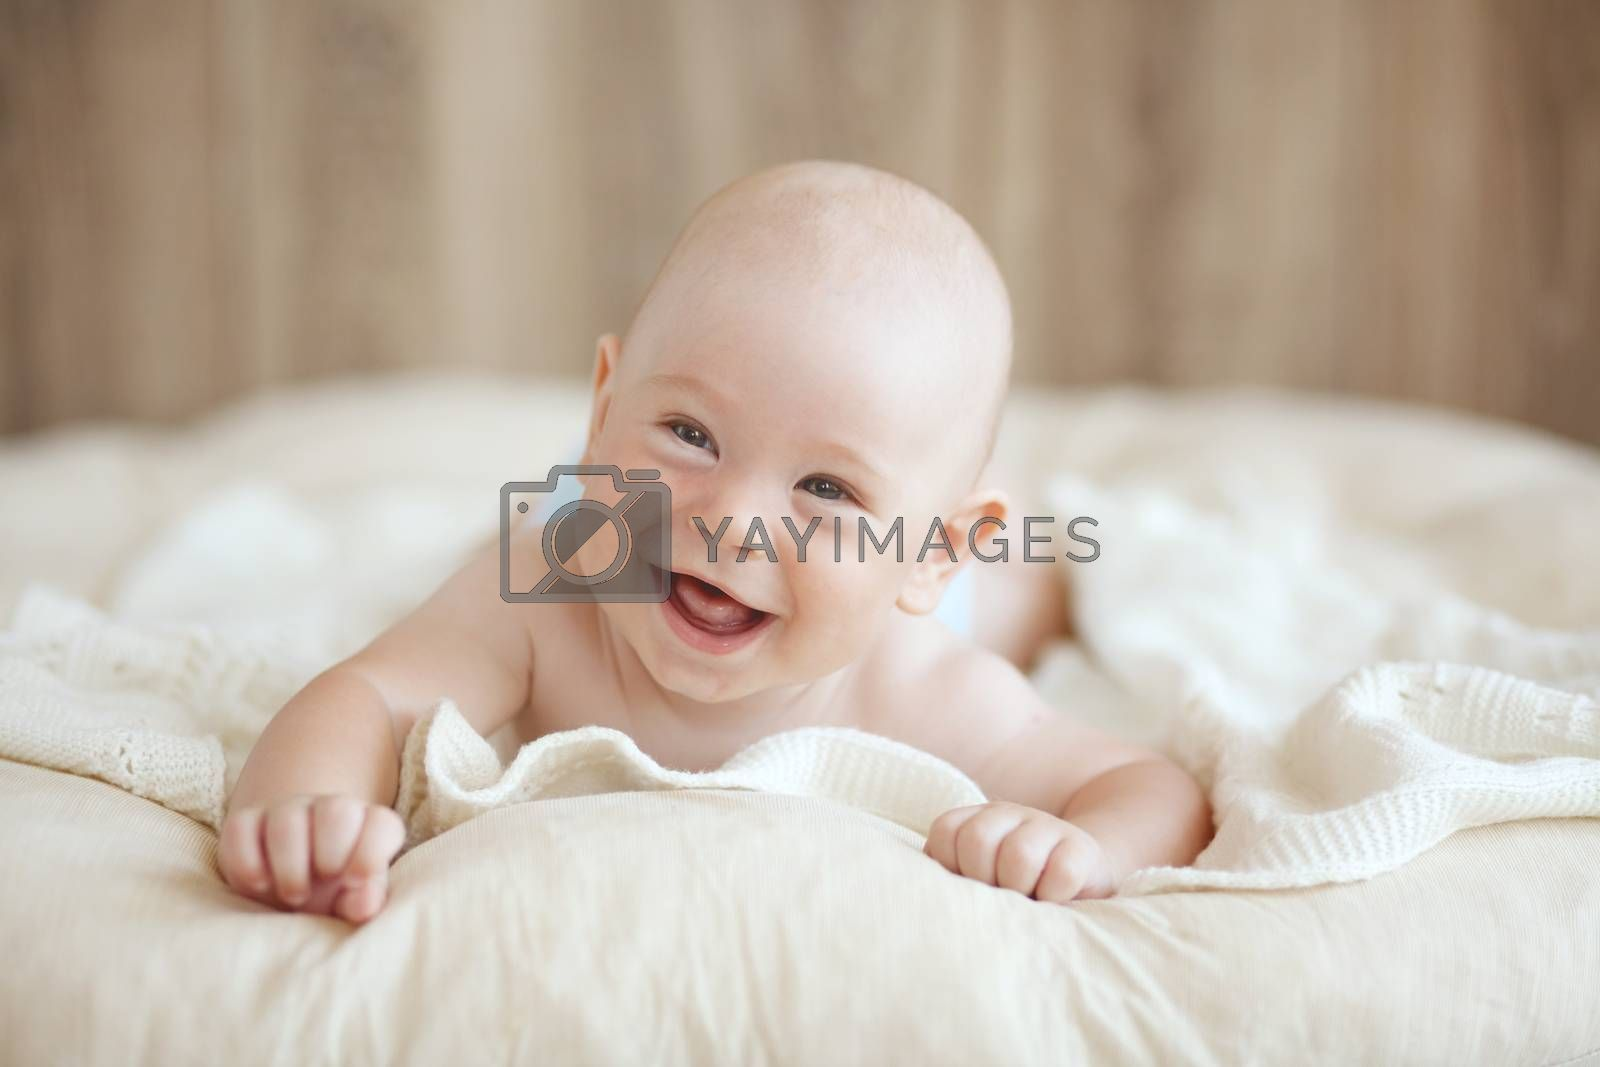 Portrait of a cute 4 months baby lying down on a blanket